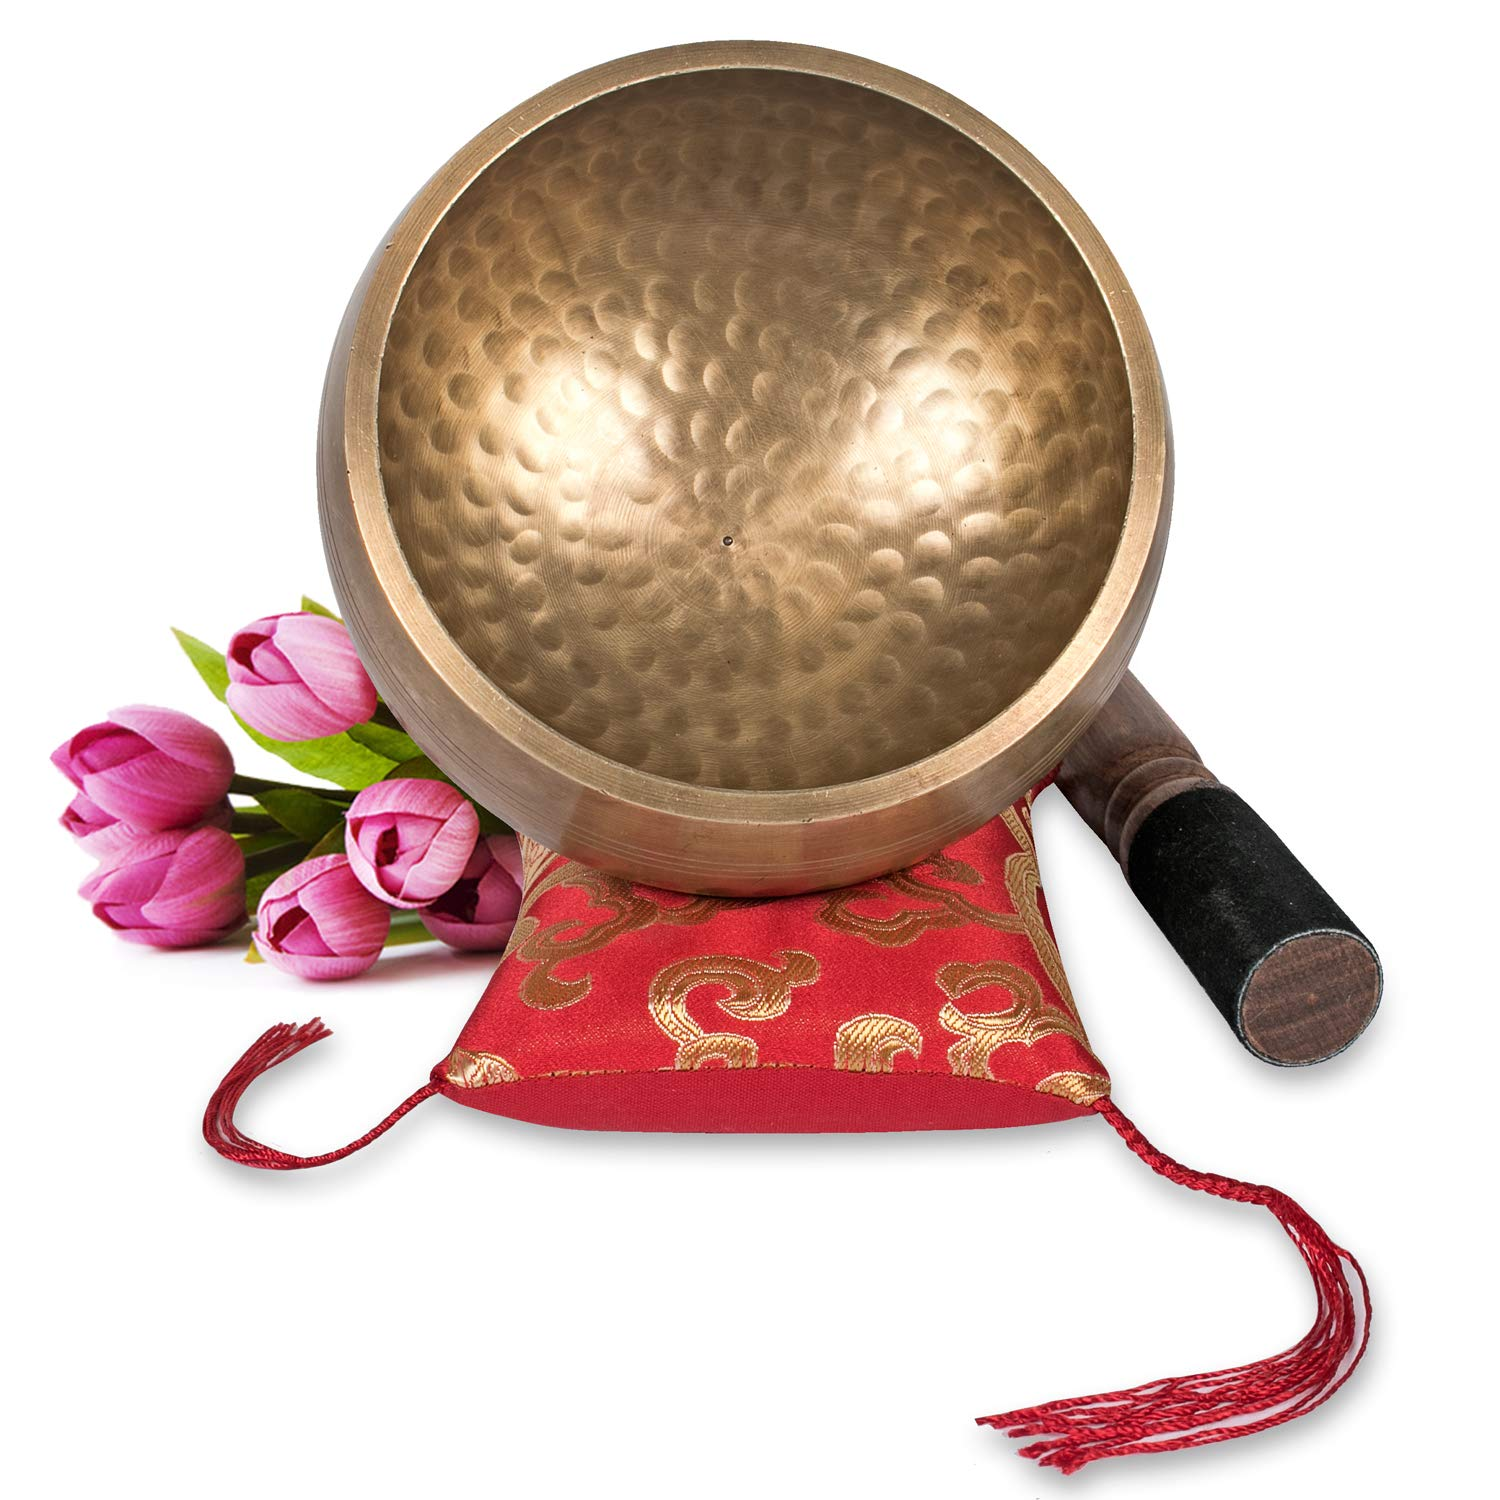 Tibetan Singing Bowl Set ~ Maha Bodhi 4.5 Inch Wide Authentic Meditation Gong for Relaxation, Chakra Healing, Stress Reducer, Yoga and Spiritual Mind ~ Artisan Hand Hammered ~ Perfect Gift by Maha Bodhi